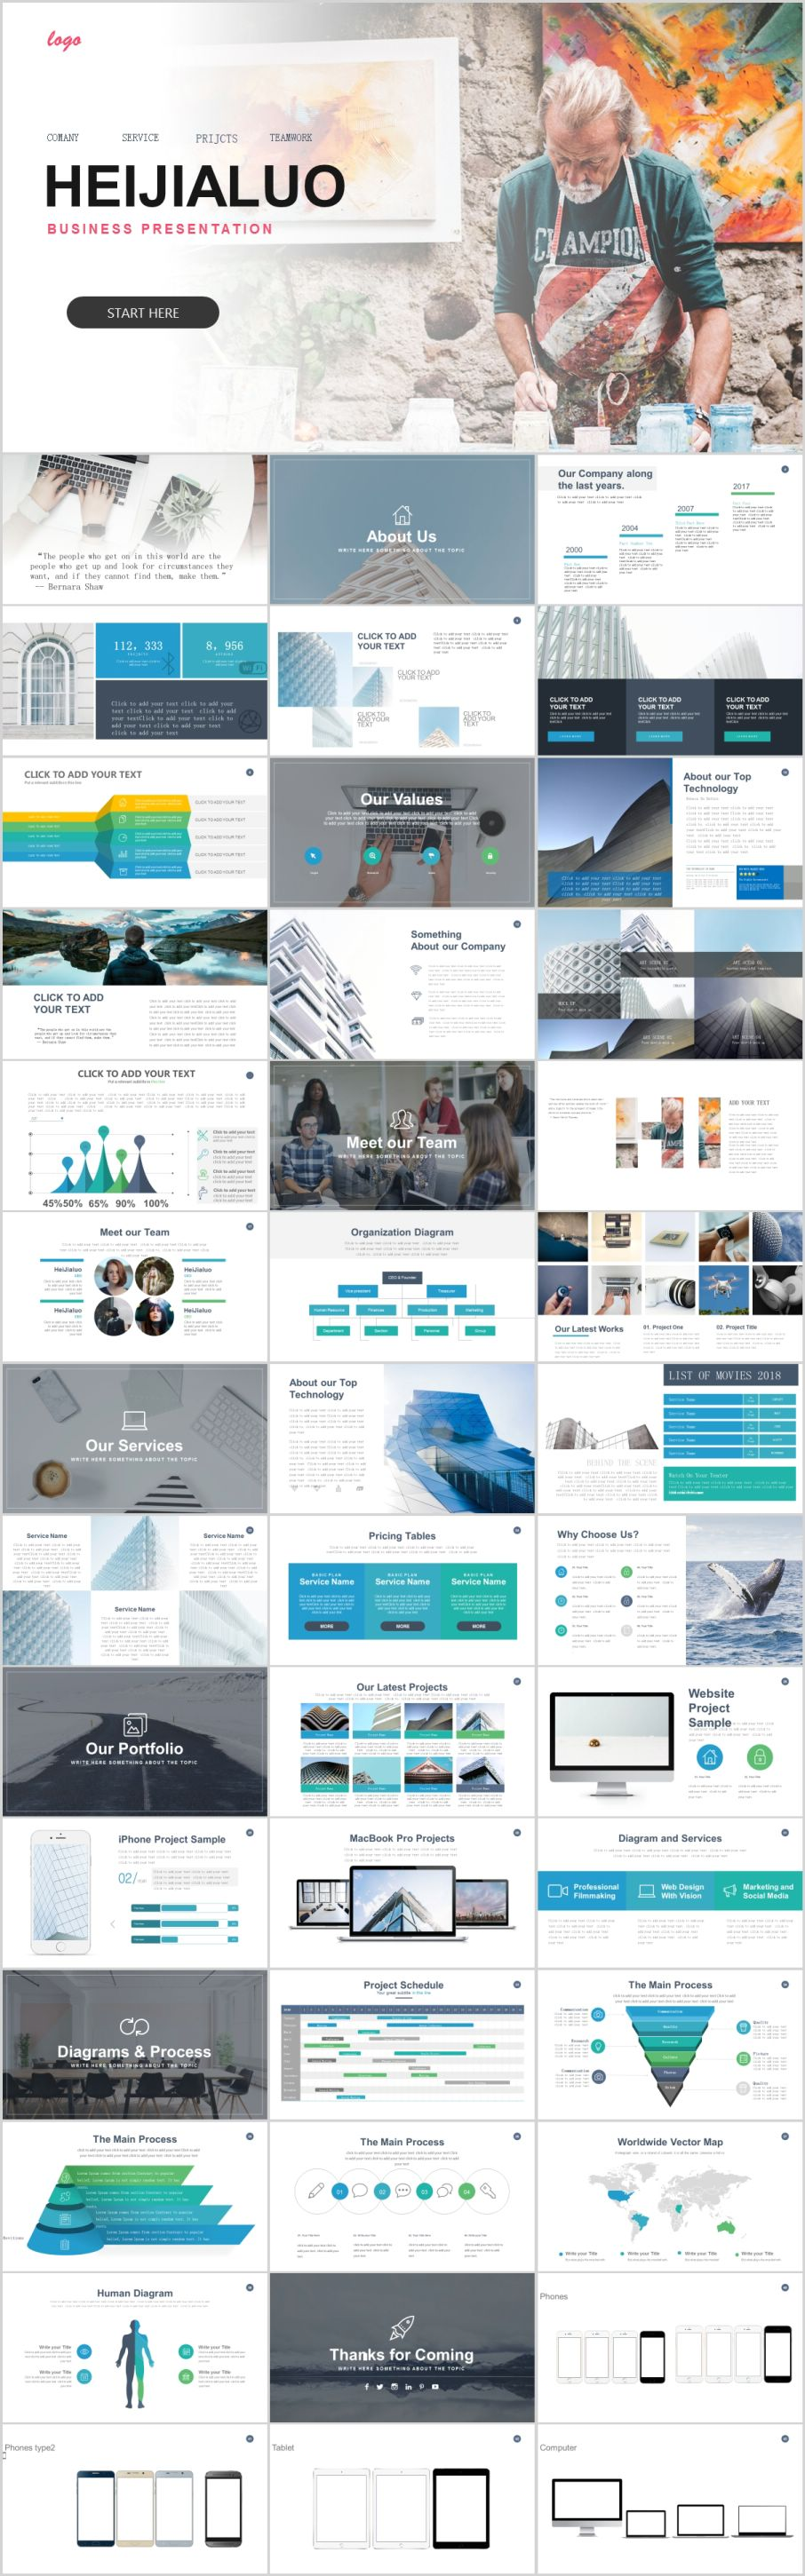 39 Best mobile business Plan PowerPoint template  The highest quality PowerPoint Templates and Keynote Templates downloadpowerpoint Informations About 39 Best mobile busi...